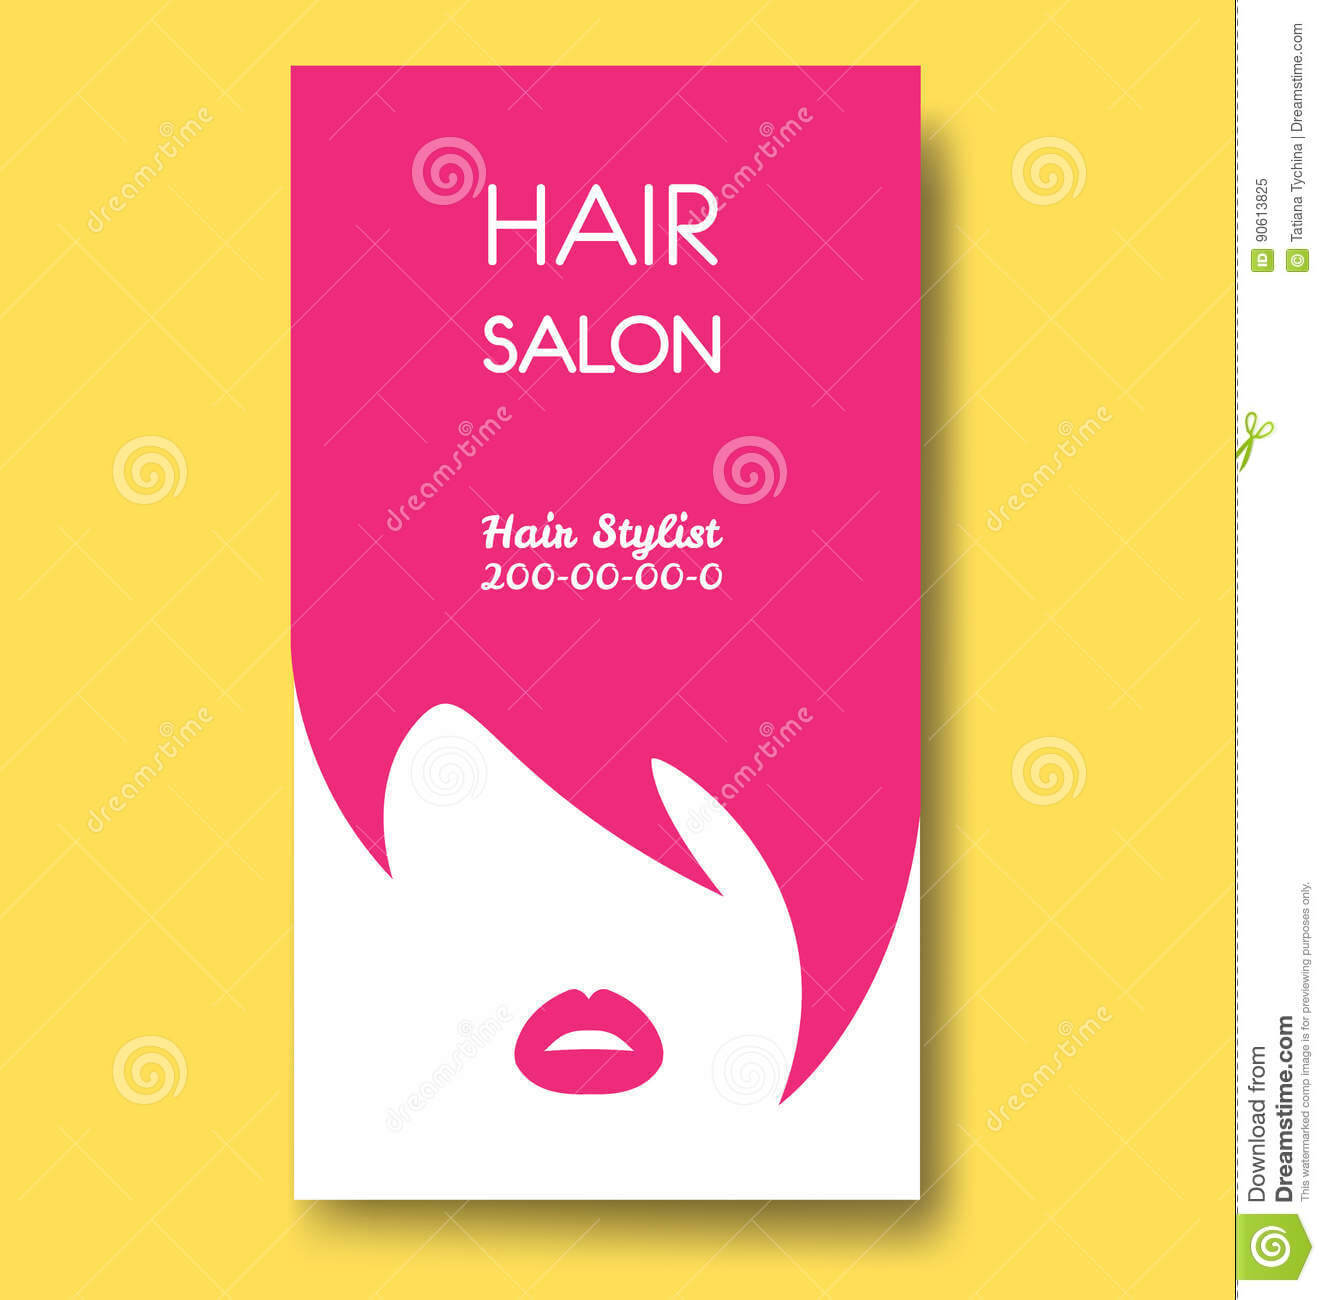 Hair Salon Business Card Templates With Pink Hair And Pink Within Hair Salon Business Card Template